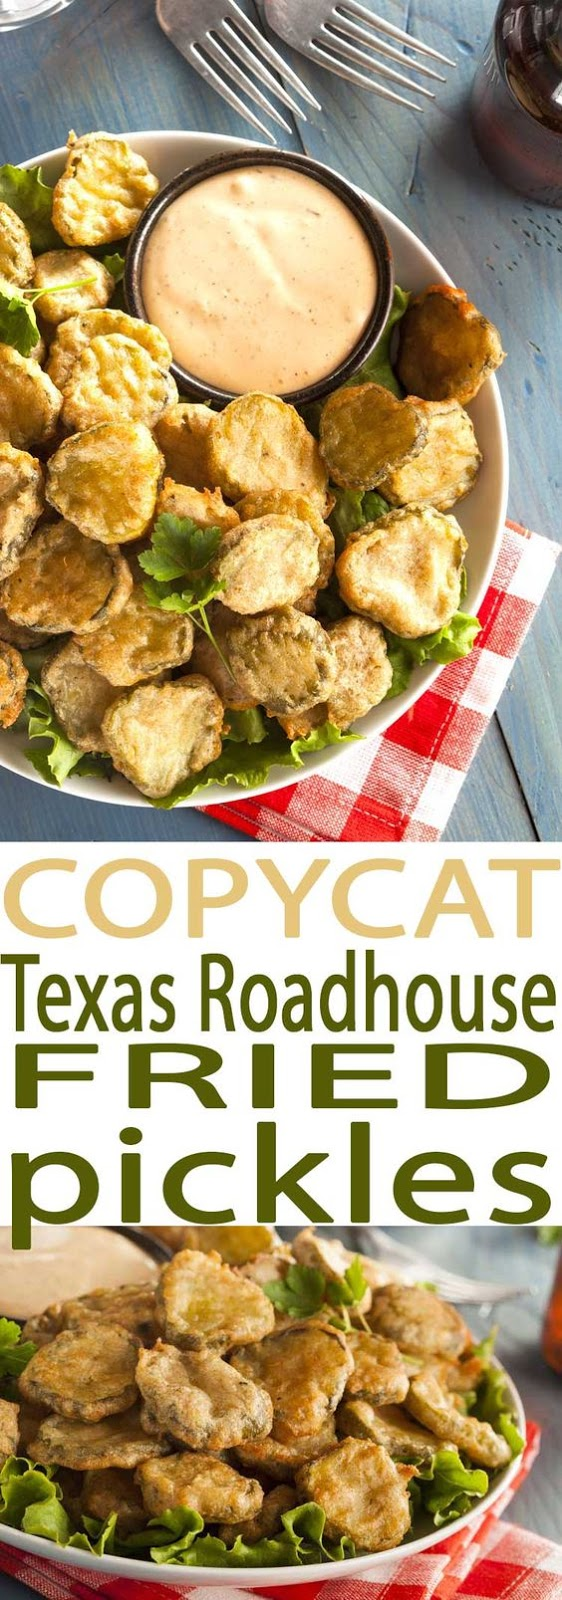 COPYCAT TEXAS ROADHOUSE FRIED PICKLES RECIPE